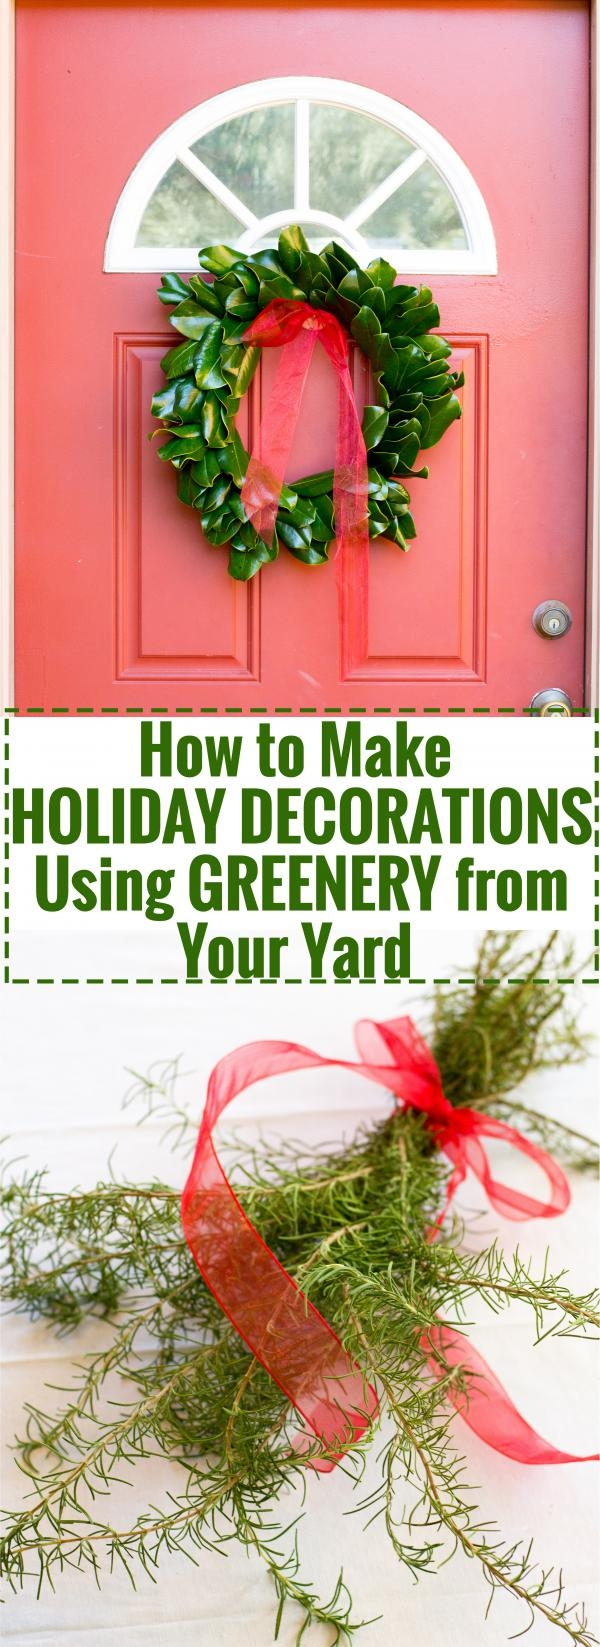 I Love The Smell Of Fresh Greenery In The House, Especially Around The  Holidays. Every Year, I Purchase A Fresh Wreath And Swag To Decorate With  Each ...